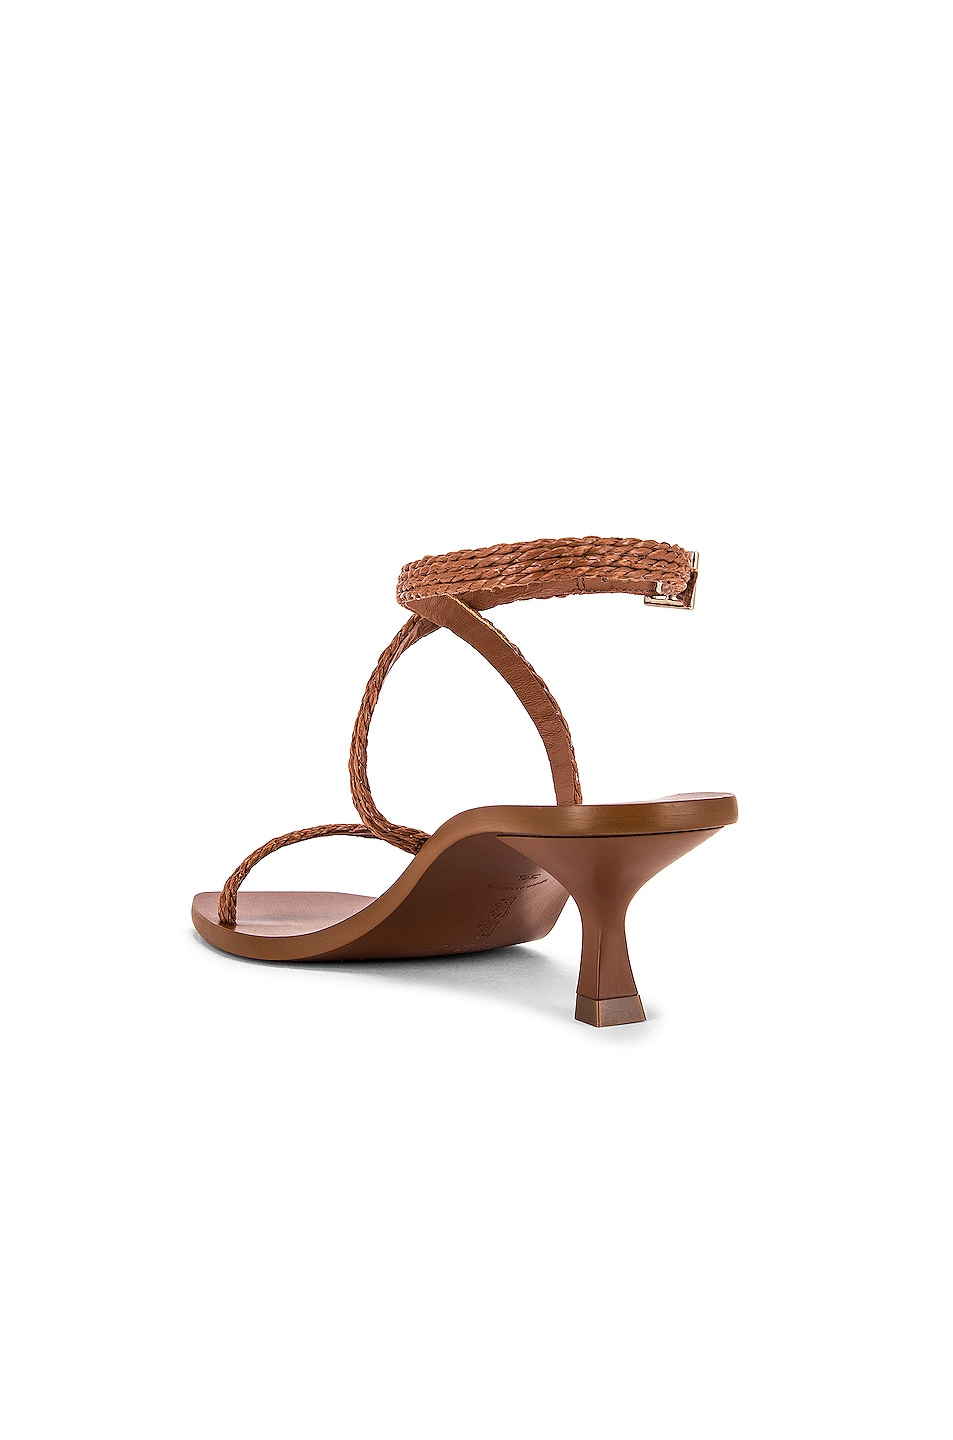 Image 3 of Cult Gaia Banu Sandal in Soil